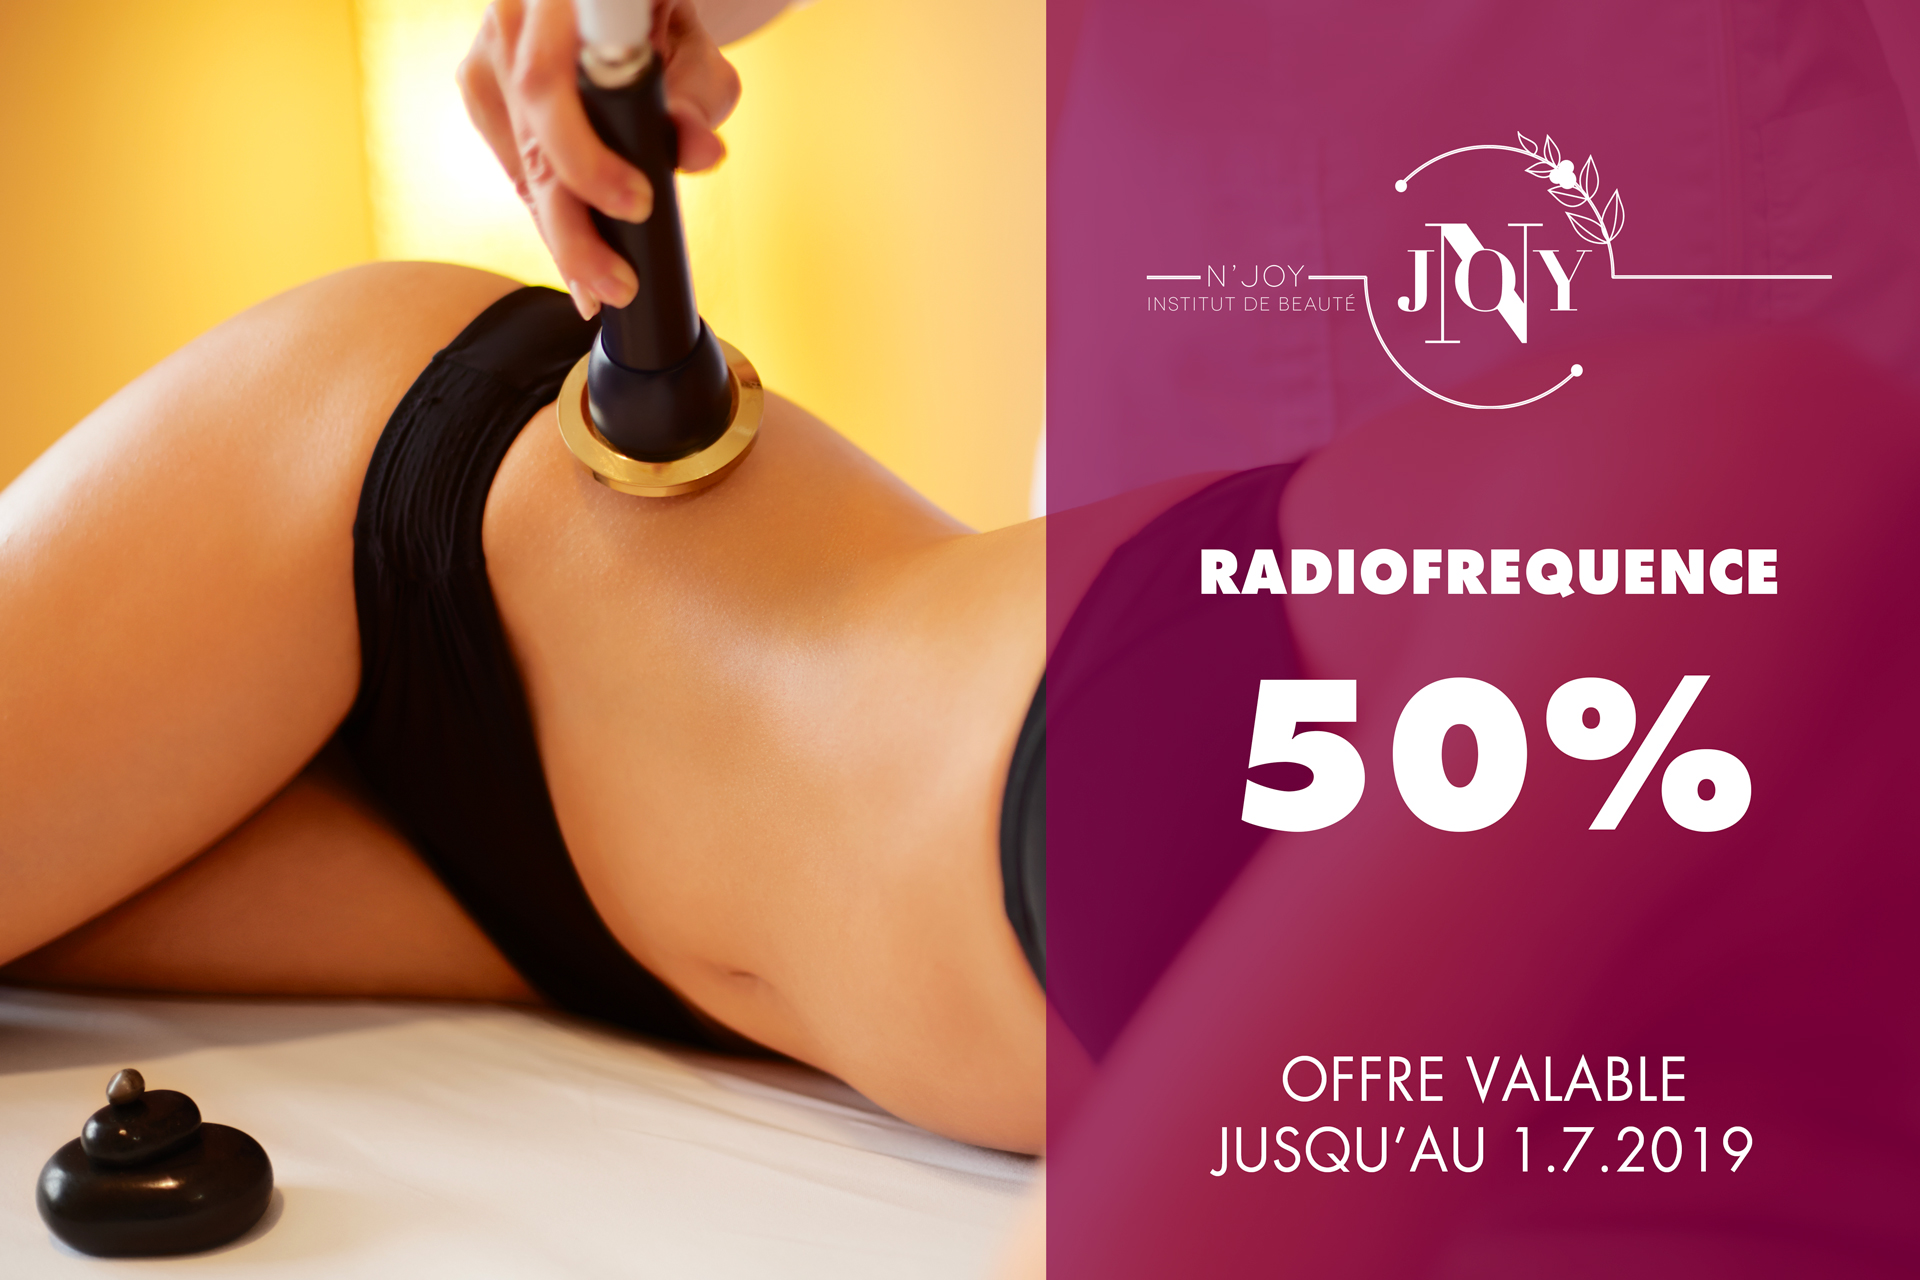 Offre radiofrequence